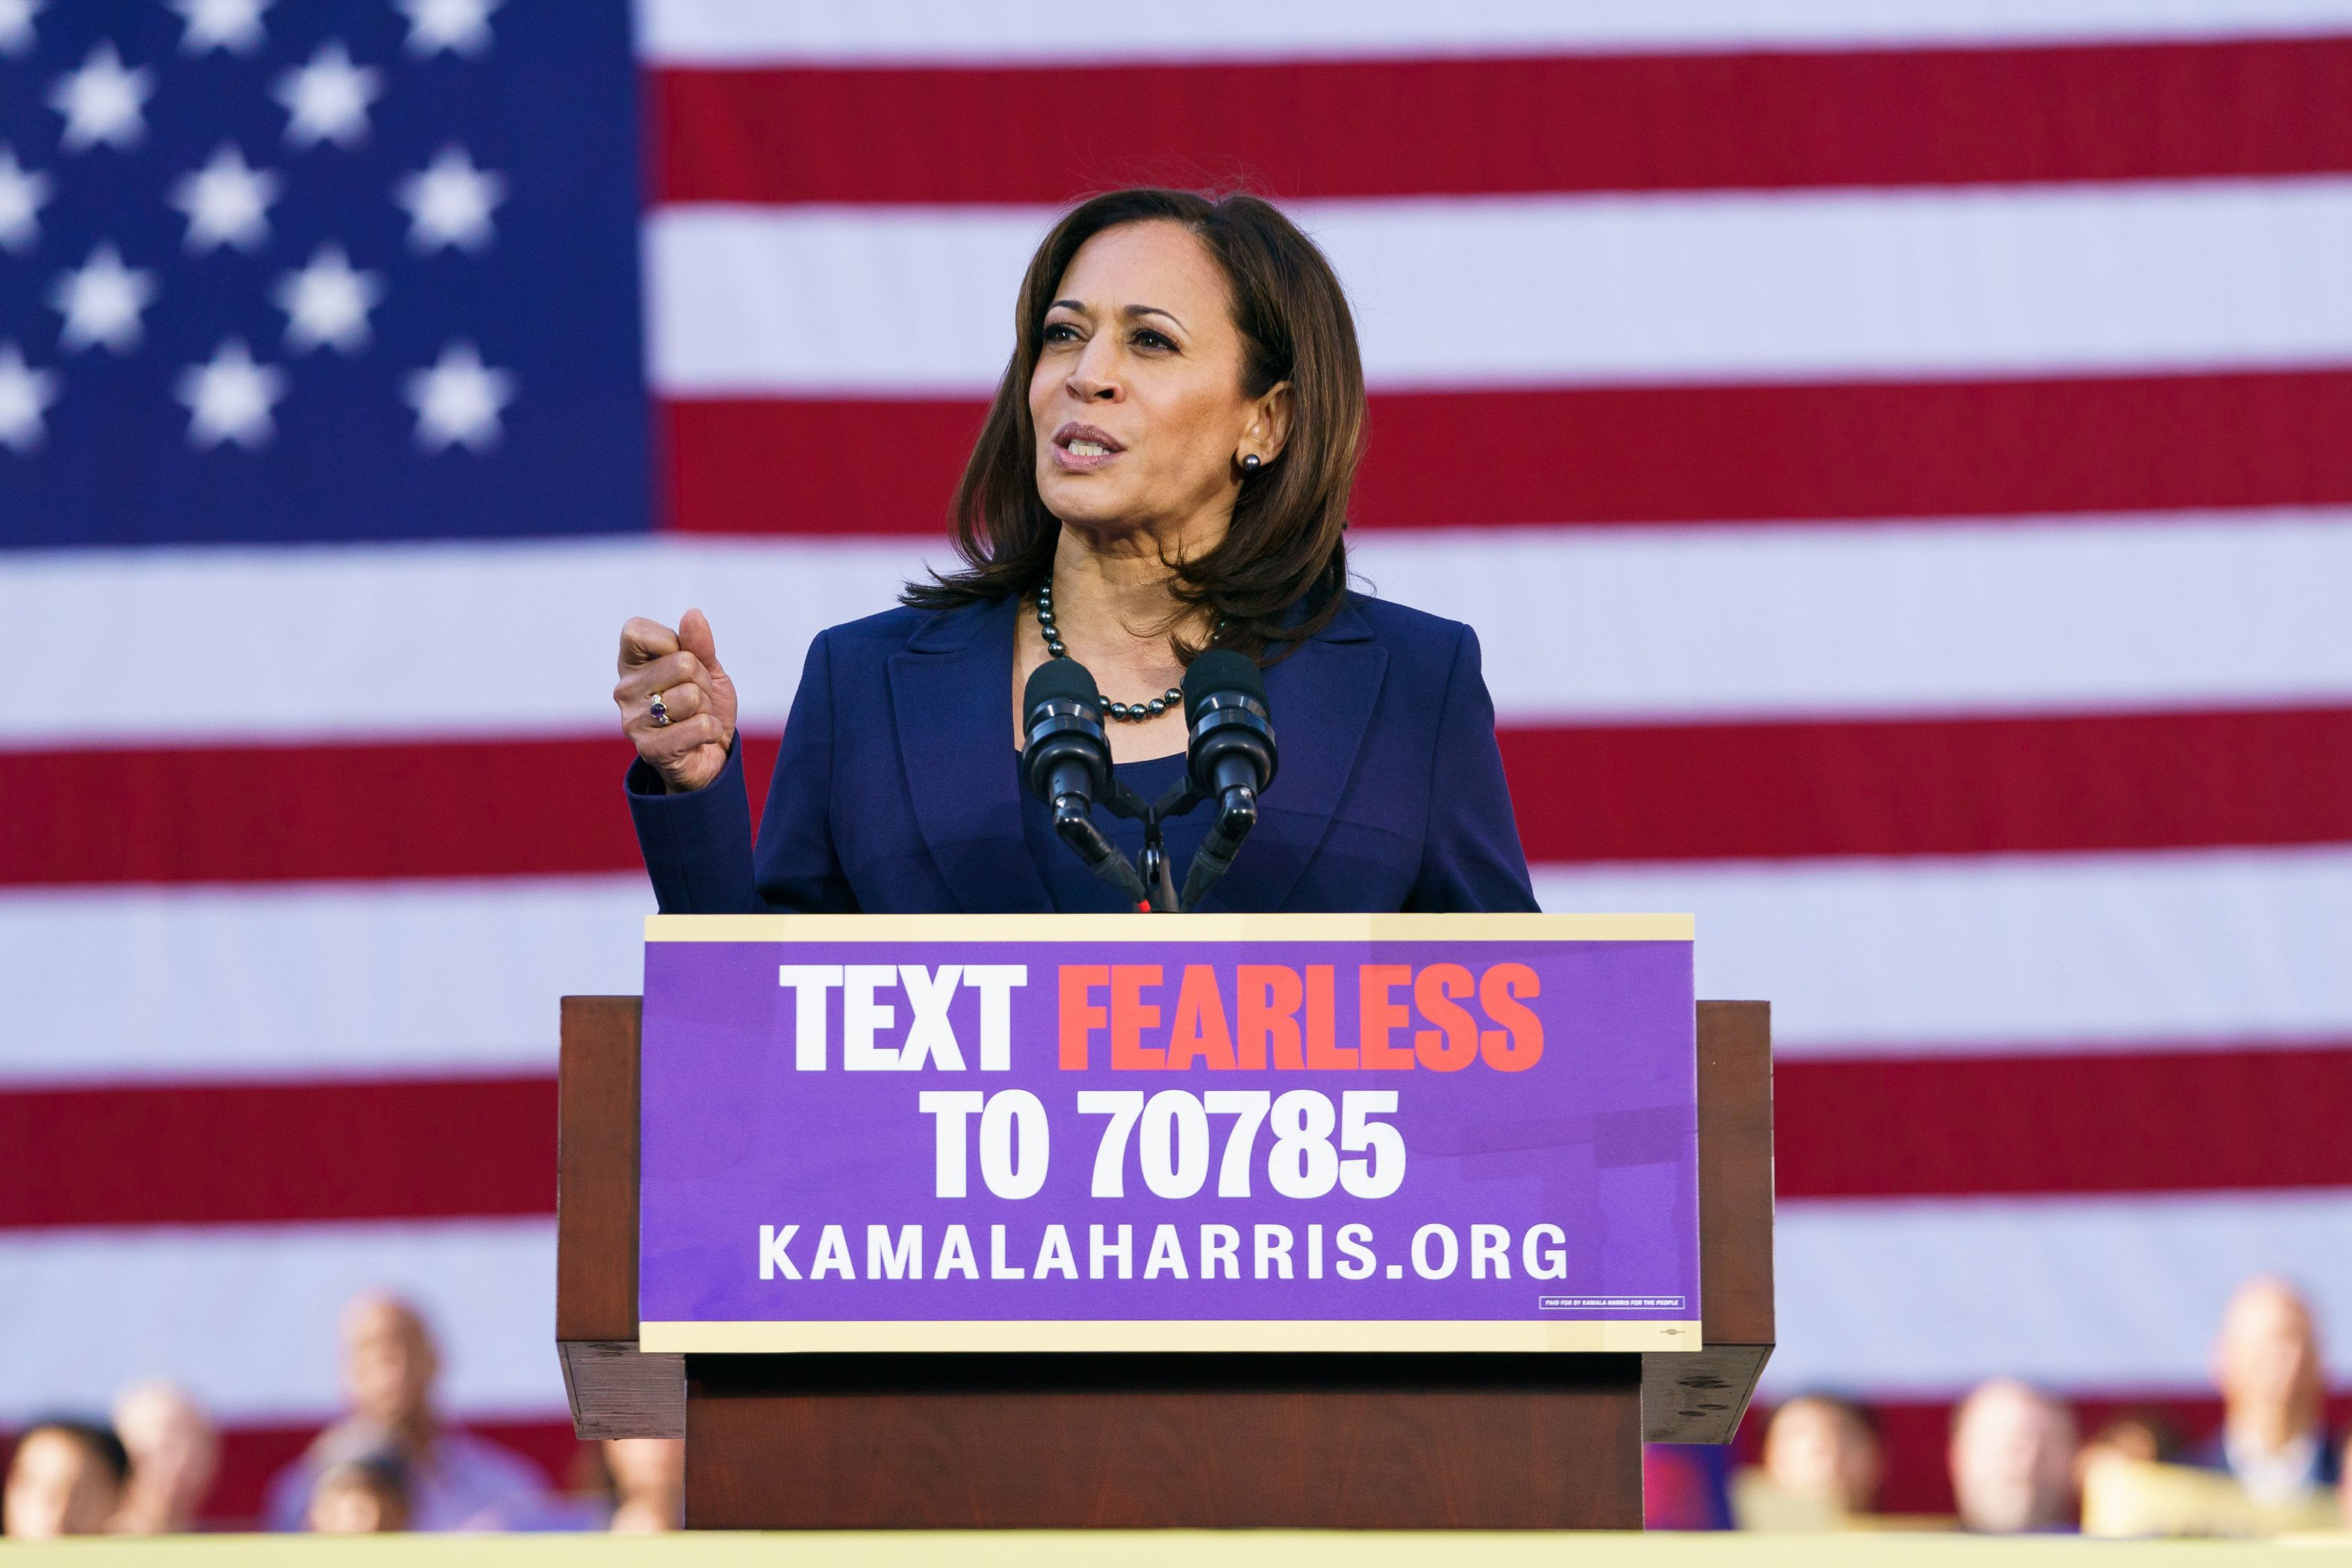 OAKLAND, CA - JANUARY 27: U.S. Senator Kamala Harris (D-CA) speaks to her supporters during her presidential campaign launch rally in Frank H. Ogawa Plaza on January 27, 2019, in Oakland, California. Twenty thousand people turned out to see the Oakland native launch her presidential campaign in front of Oakland City Hall. (Photo by Mason Trinca/Getty Images)